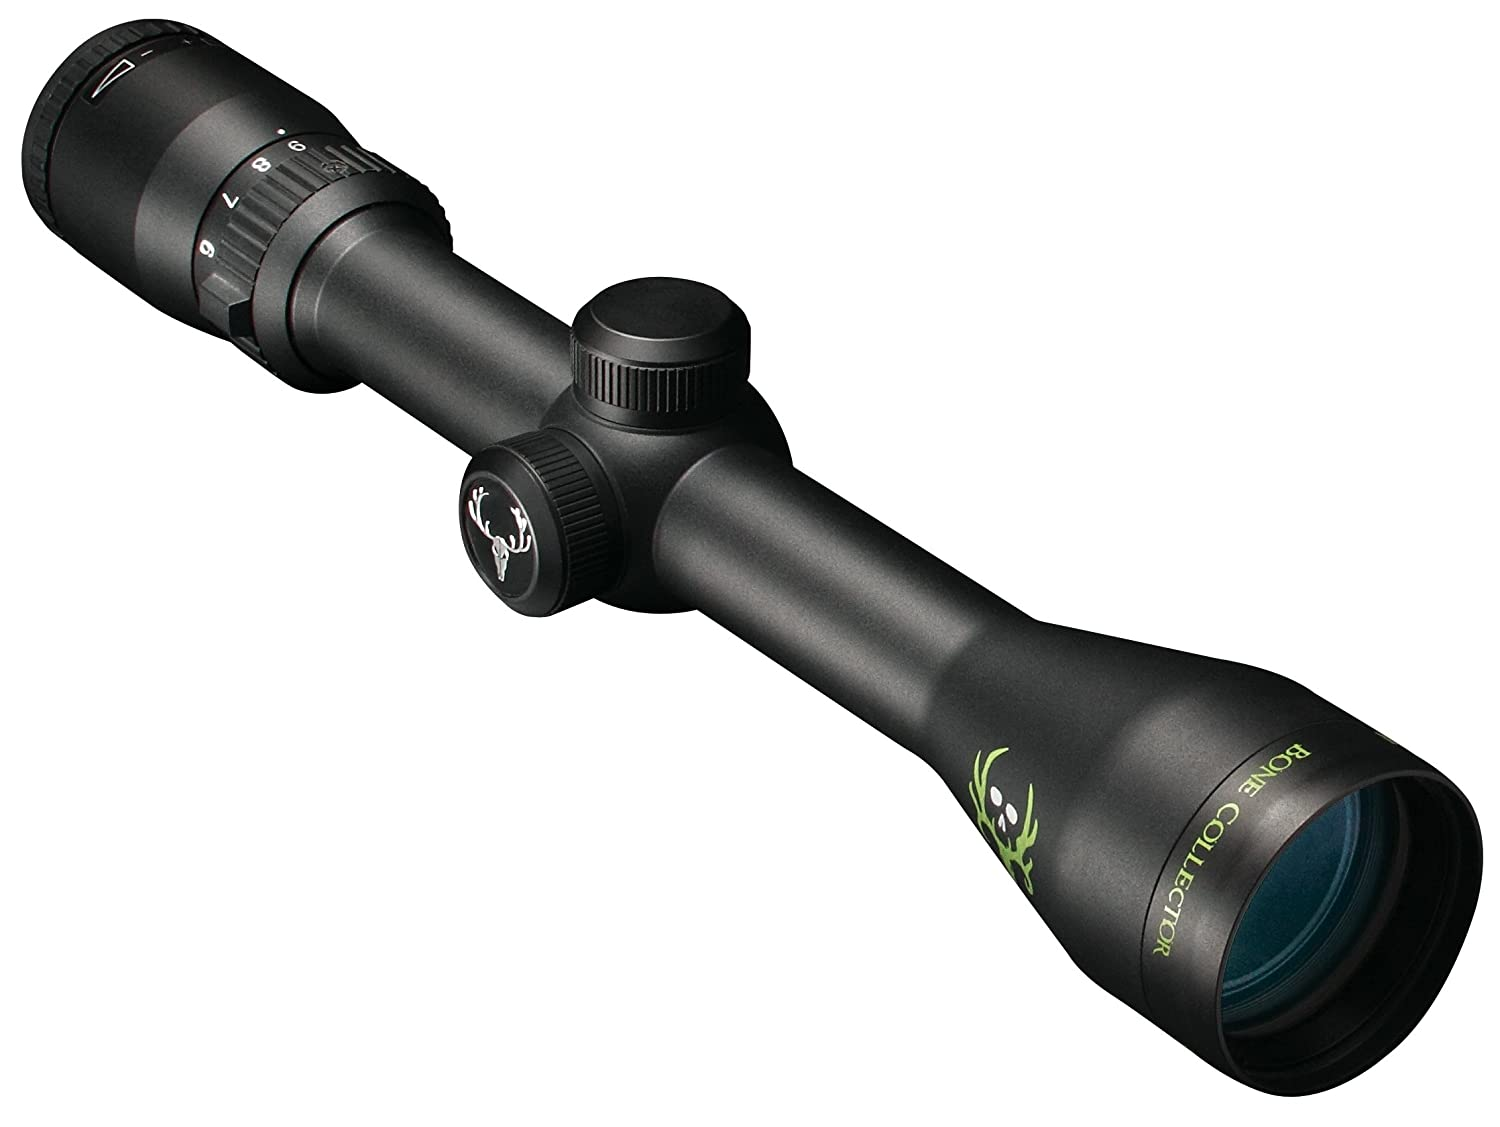 Bushnell Trophy XLT Multi-X Reticle Riflescope Review